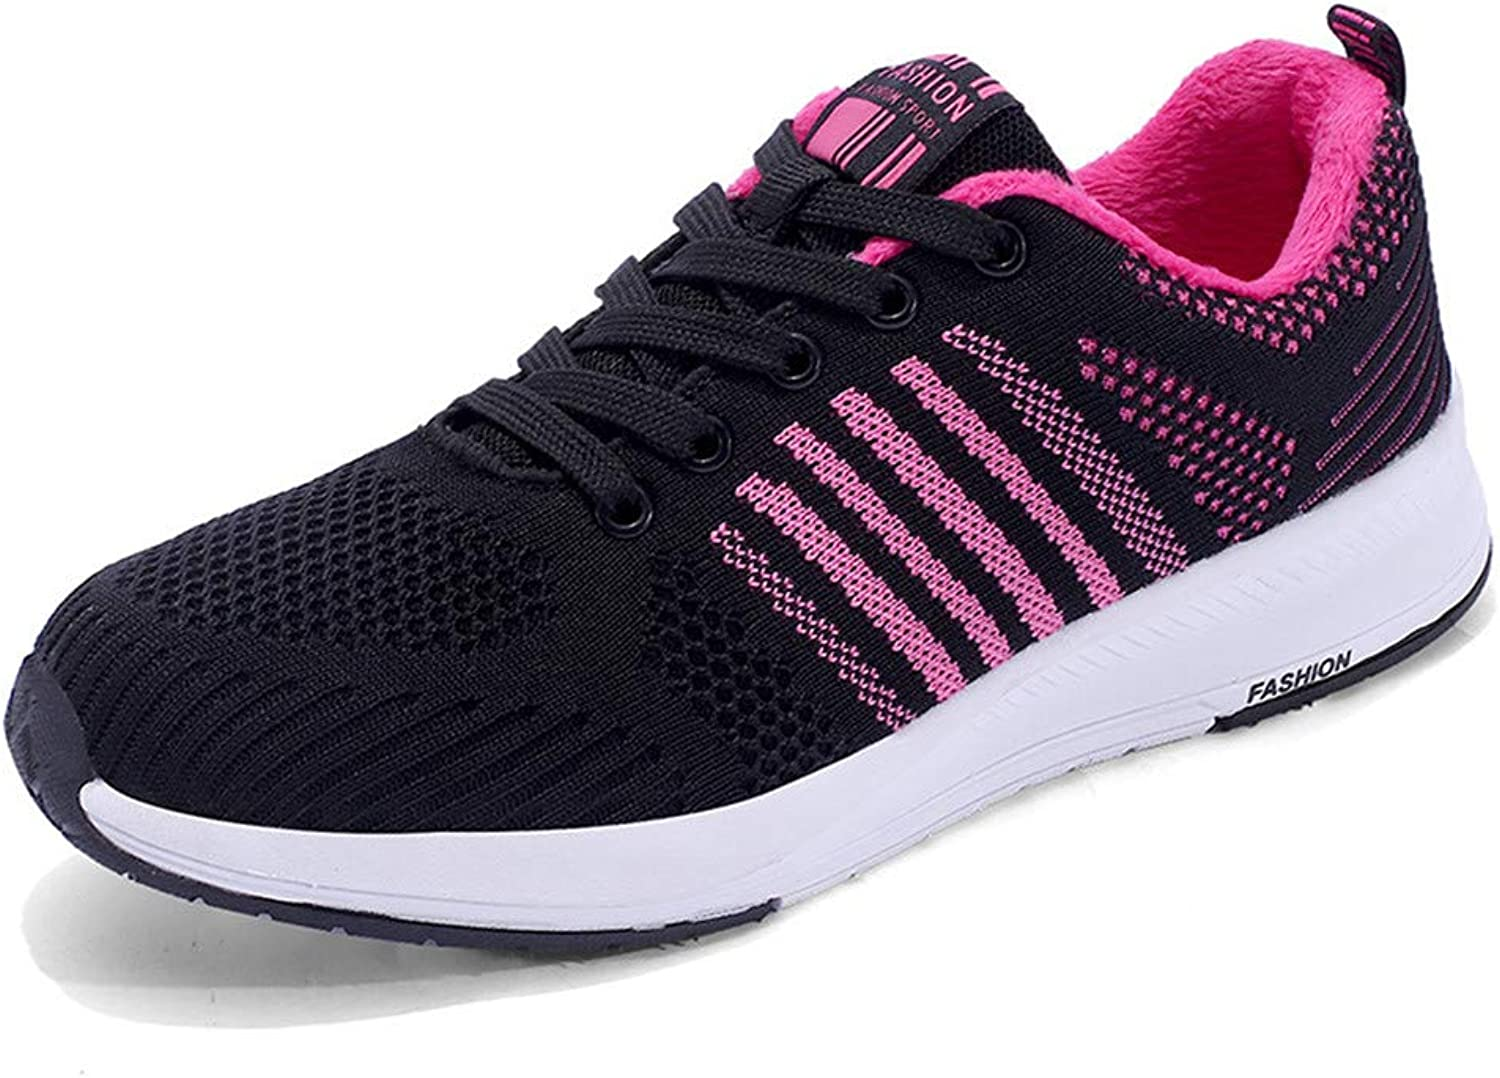 Womens Men Mesh Running shoes Gym Casual Sports shoes Tennis Walking shoes Air Trainers Fitness Flats Athletic Competition Sneakers